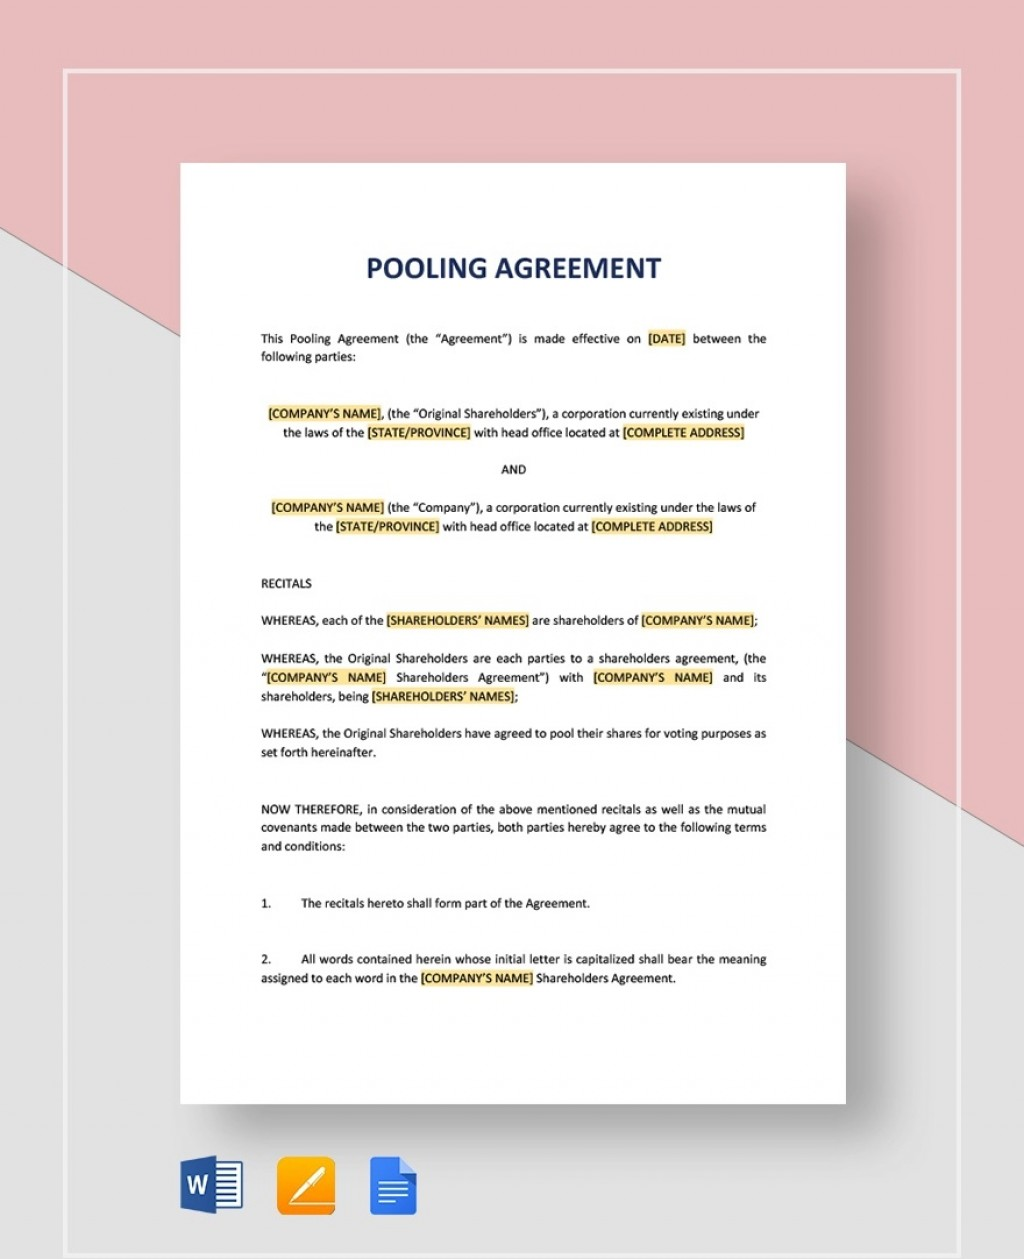 Pooling Agreement Jpg  Template CashLarge